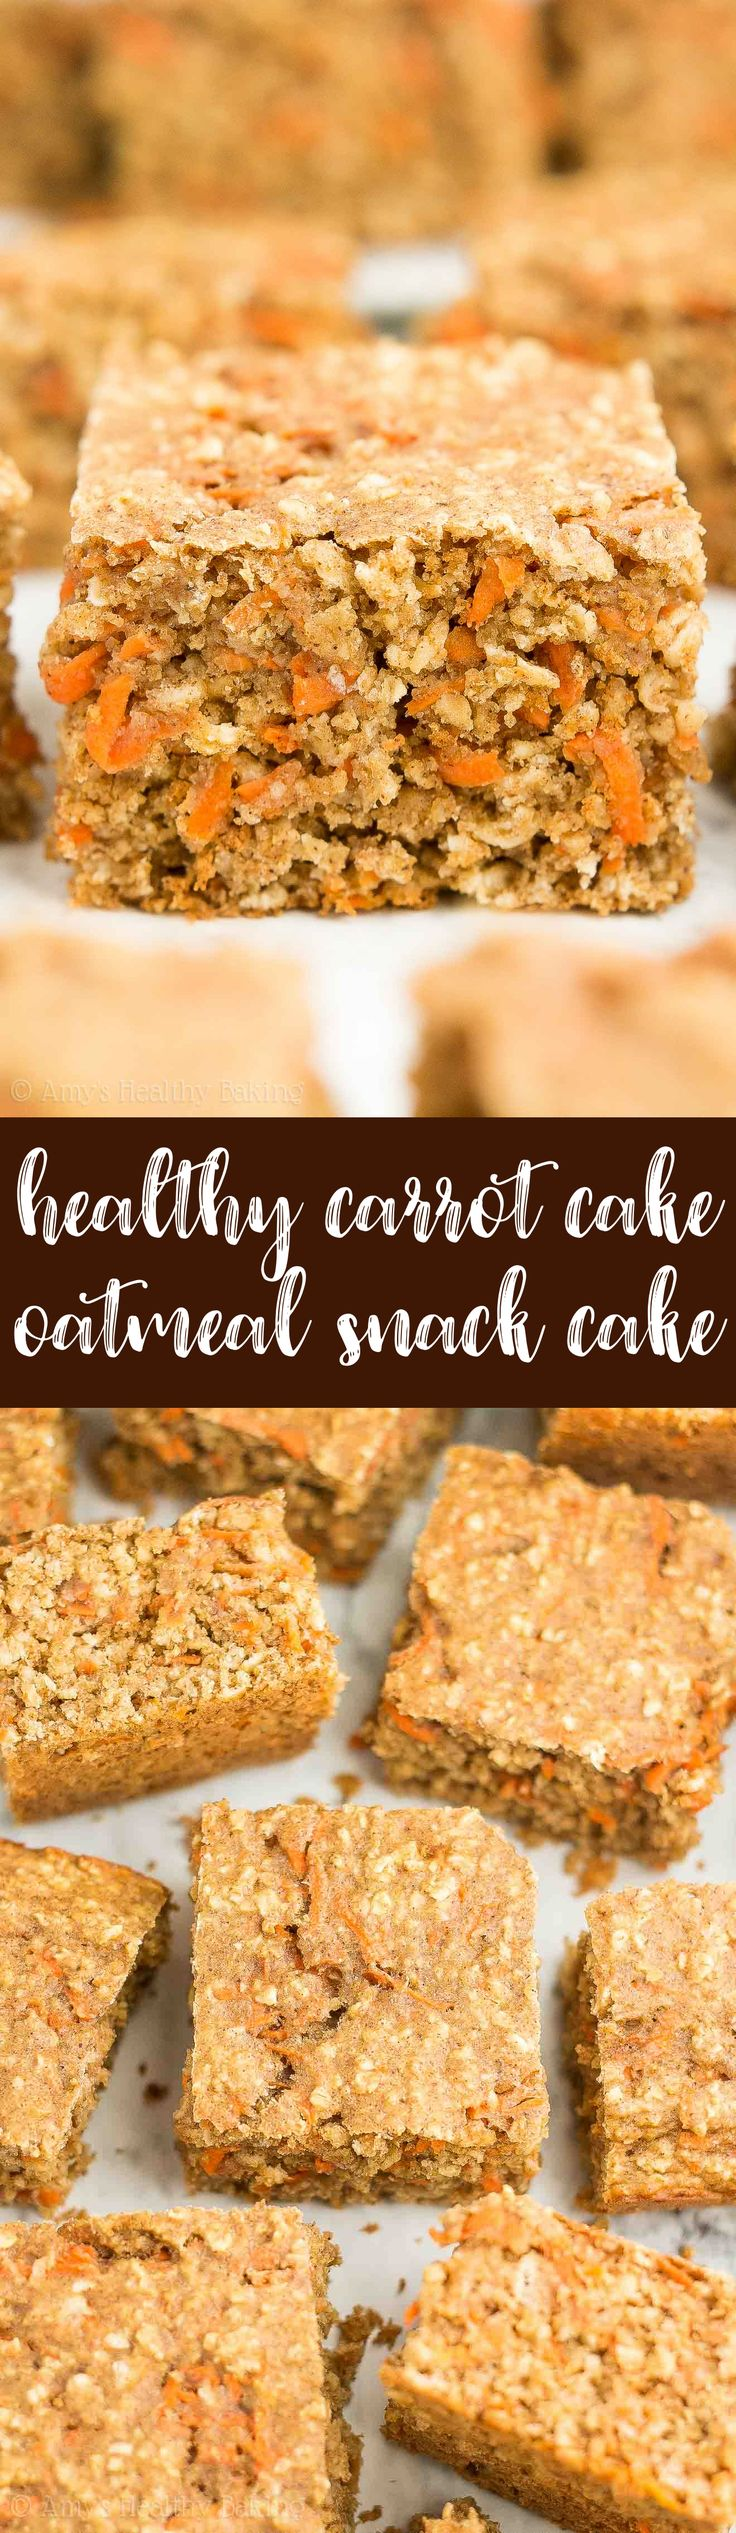 Healthy Carrot Cake Oatmeal Snack Cake! Only 100 calories & SO easy to make! It really does taste like carrot cake -- I'm OBSESSED! And my picky family gave it 2 thumbs up! | easy snack cake | healthy snack cake | carrot snack cake | healthy clean eating snack cake